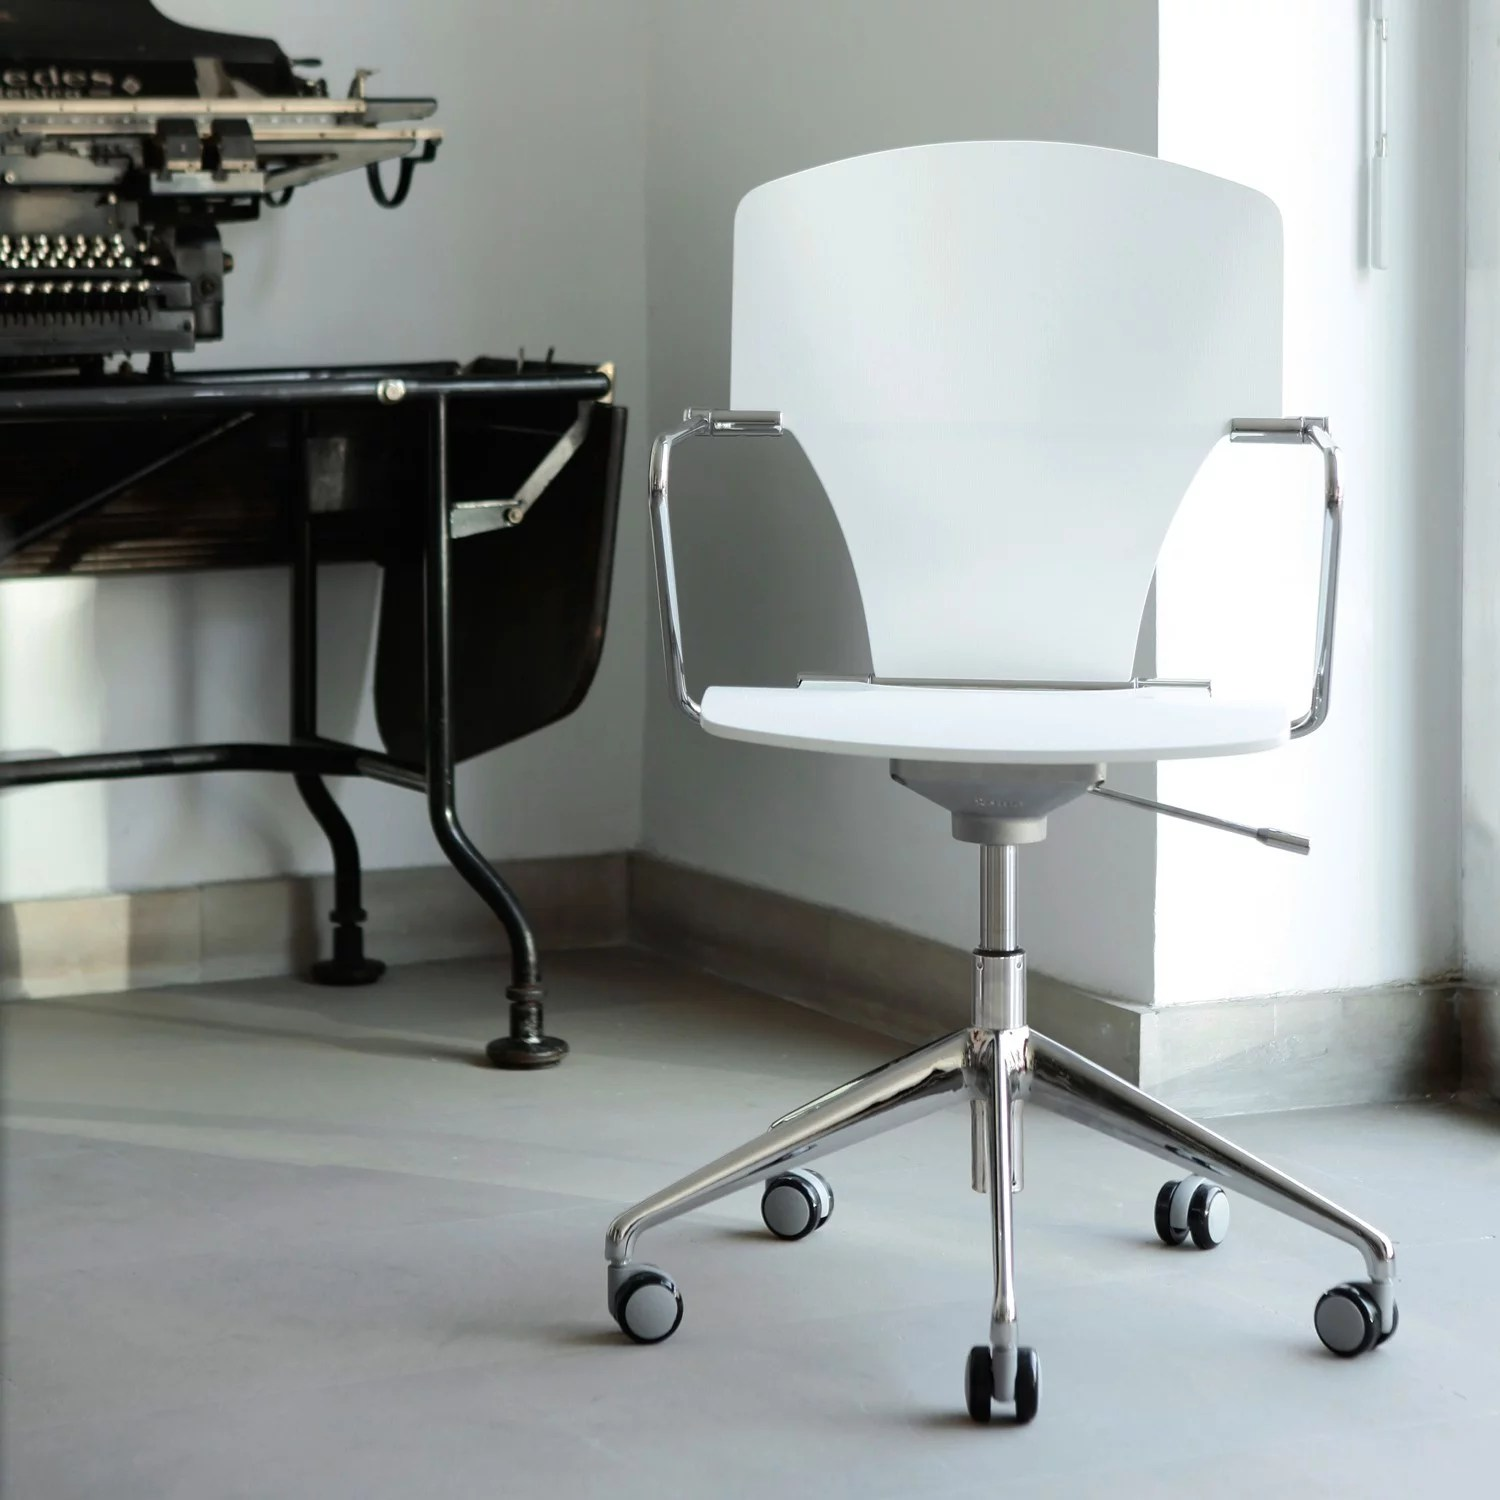 Moving Chair Egoa Chair With Castors Designer Swivel Chairs From Stua